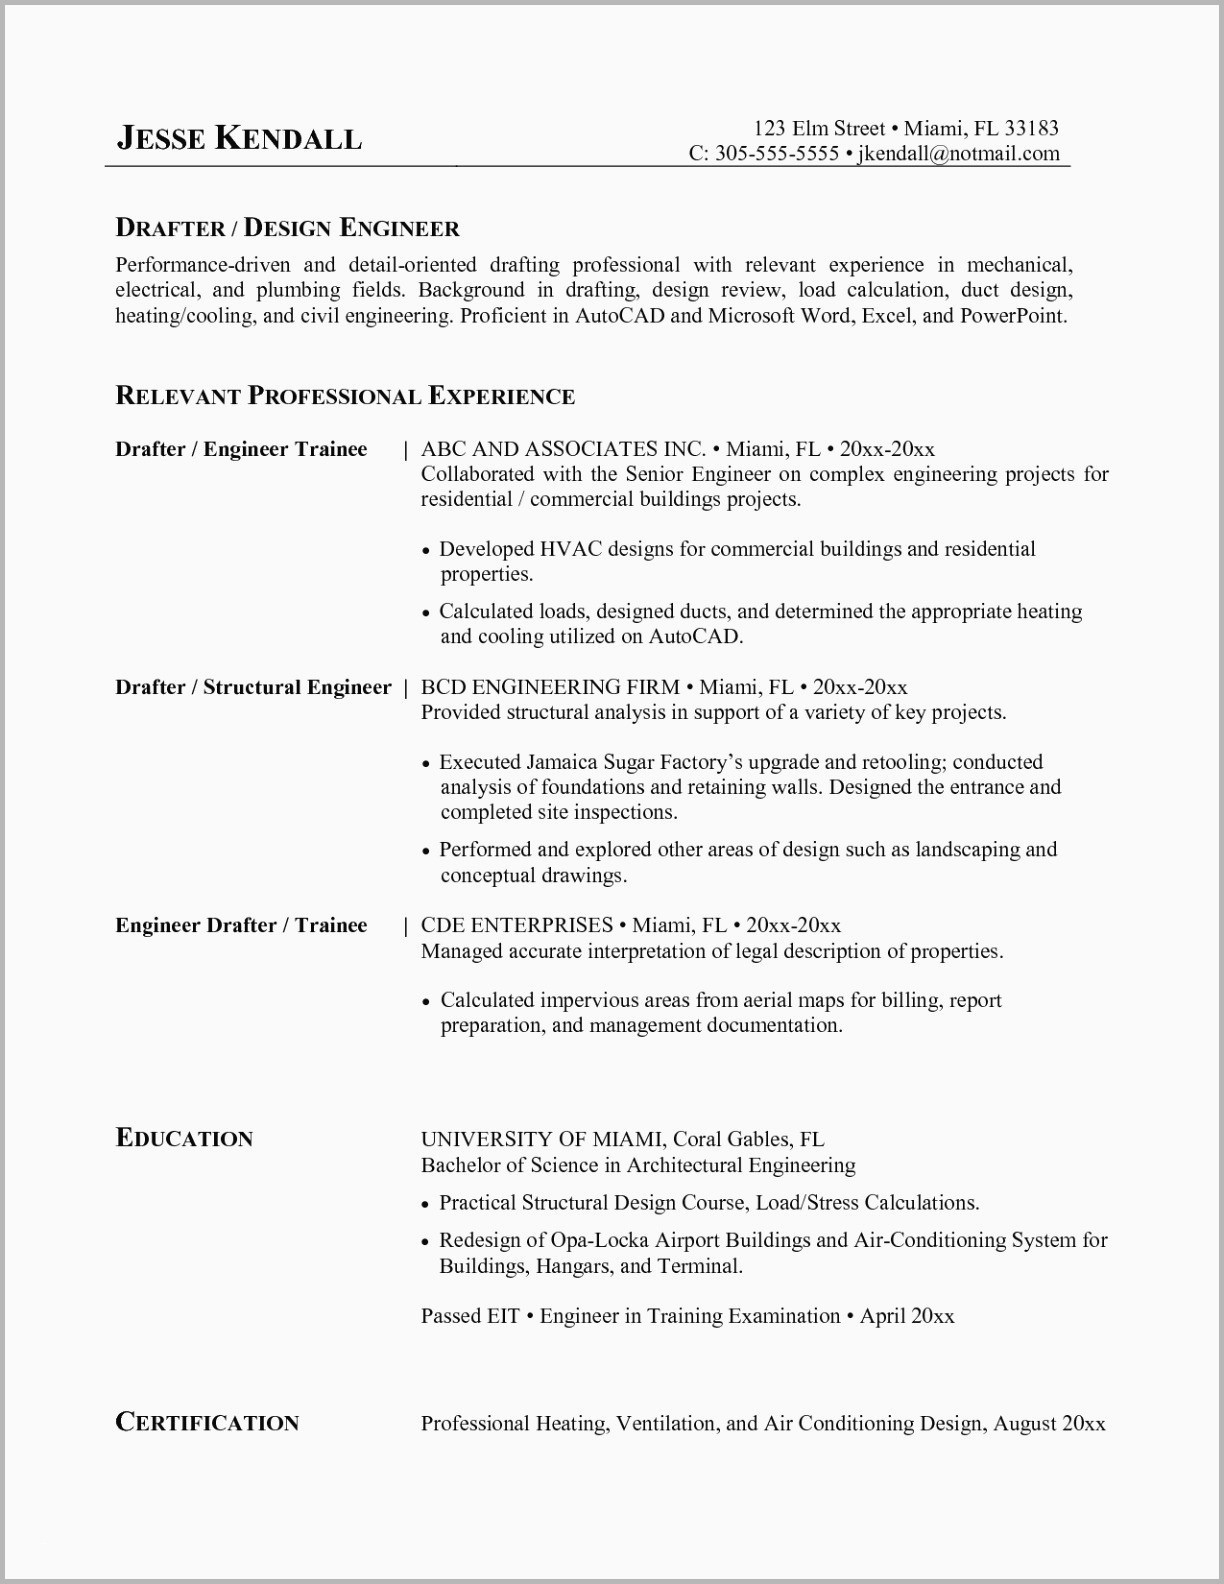 Resume Template Electrician - Journeyman Electrician Resume Beautiful Template